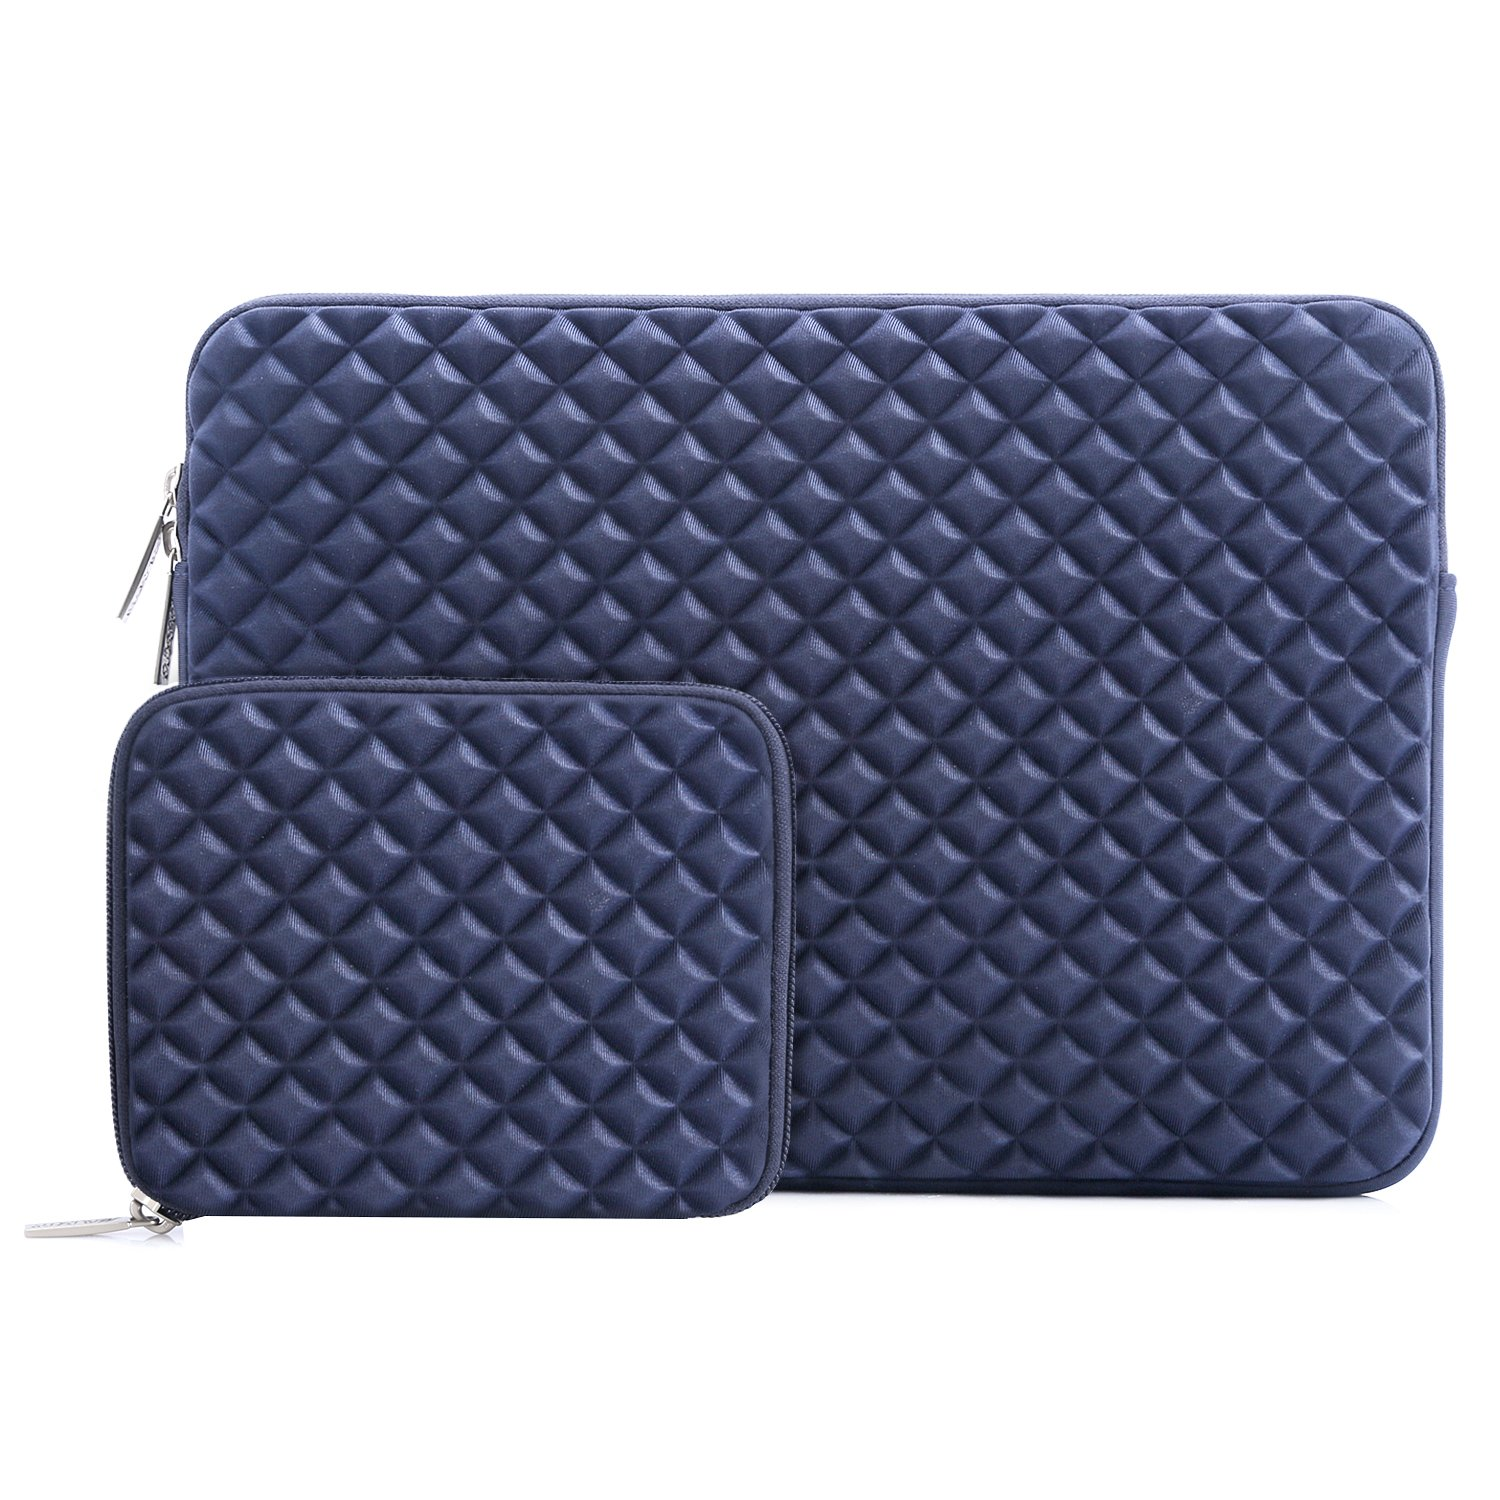 MOSISO Laptop Sleeve Bag Compatible 13-13.3 Inch MacBook Pro, MacBook Air, Notebook Computer with Small Case, Shock Resistant Diamond Foam Water Repellent Neoprene Chromebook Tablet Cover, Navy Blue